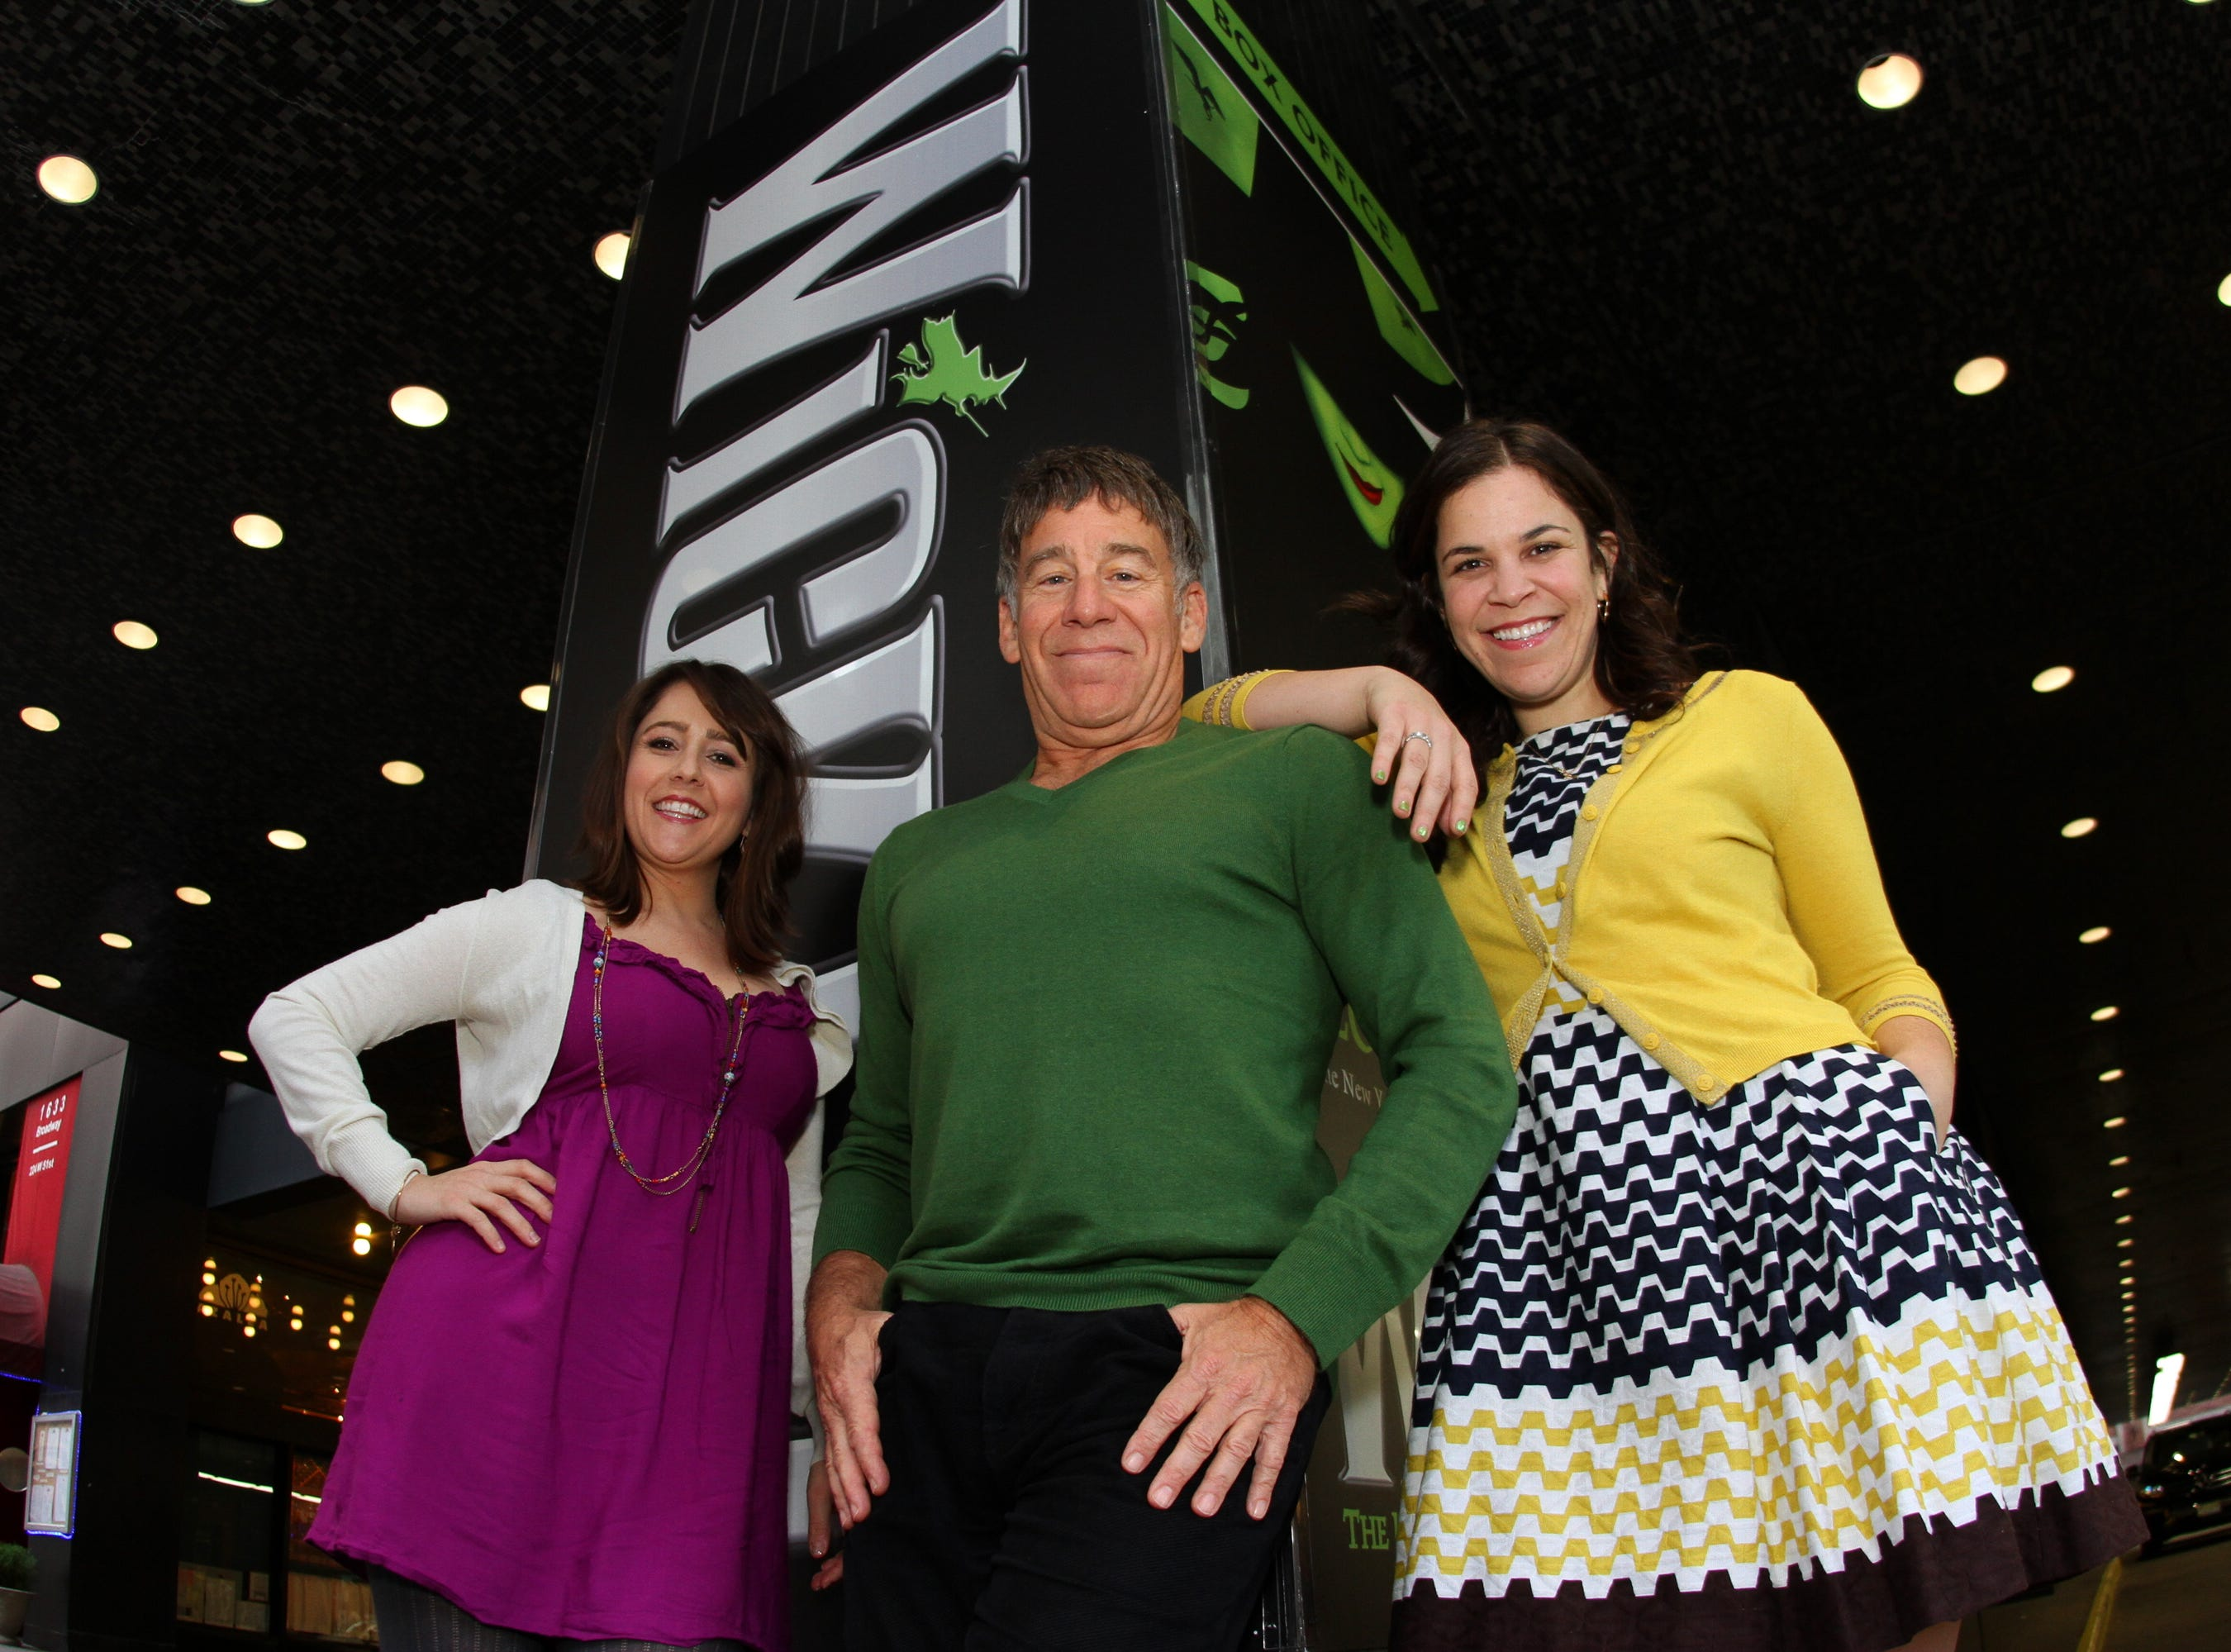 10/22/2013 -- New York, NY, U.S. Outlying Islands  --  Composer Stephen Schwartz and current stars Alli Mauzey, left, and Lindsay Mendez, right, of the Broadway hit WICKED on its 10th anniversary. --    Photo by Stan Godlewski, for USA TODAY. ORG XMIT:  SG 130277 Wicked 10/22/2013 [Via MerlinFTP Drop]